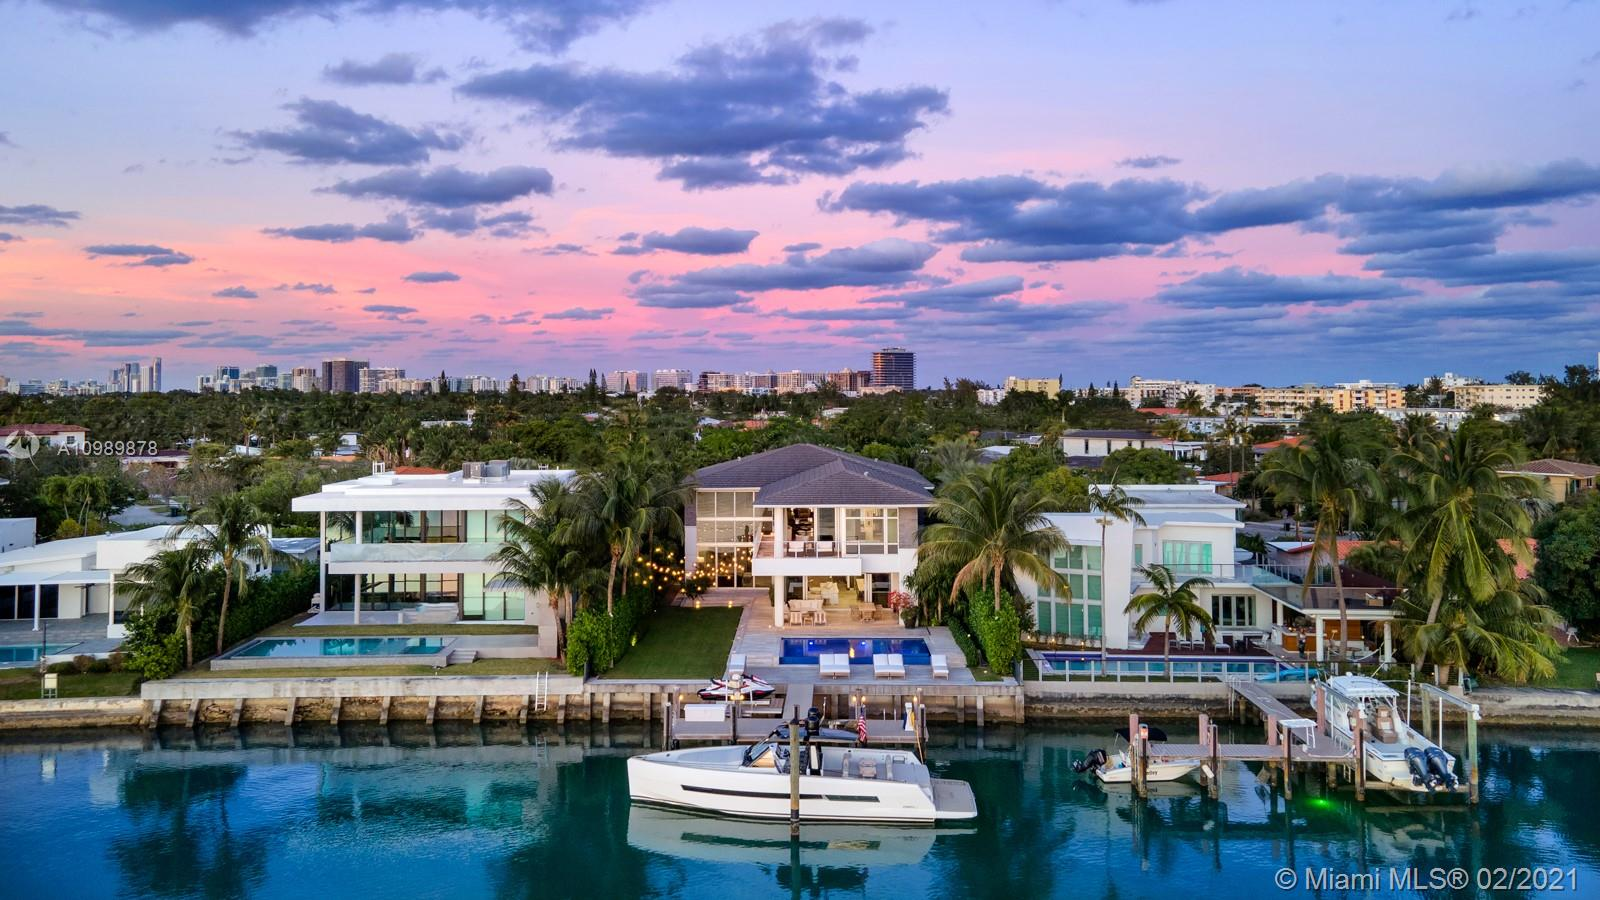 This stunning modern villa with 7,451 SF of construction and 5,600 SF under AC is Biscayne Point's most desirable listing. The south facing, 11,250 SF lot offers a sun exposed pool all day with 75 FT on Biscayne Bay. Large manicured garden and full outdoor kitchen are perfect for entertaining your friends and family. Fully integrated smart home powered by Savant. Italian kitchen with Sub-Zero/ WOLF appliances. Service quarters with bedroom / bathroom. Five minutes from Bal Harbour Shops and 10 minutes from the heart of South Beach.